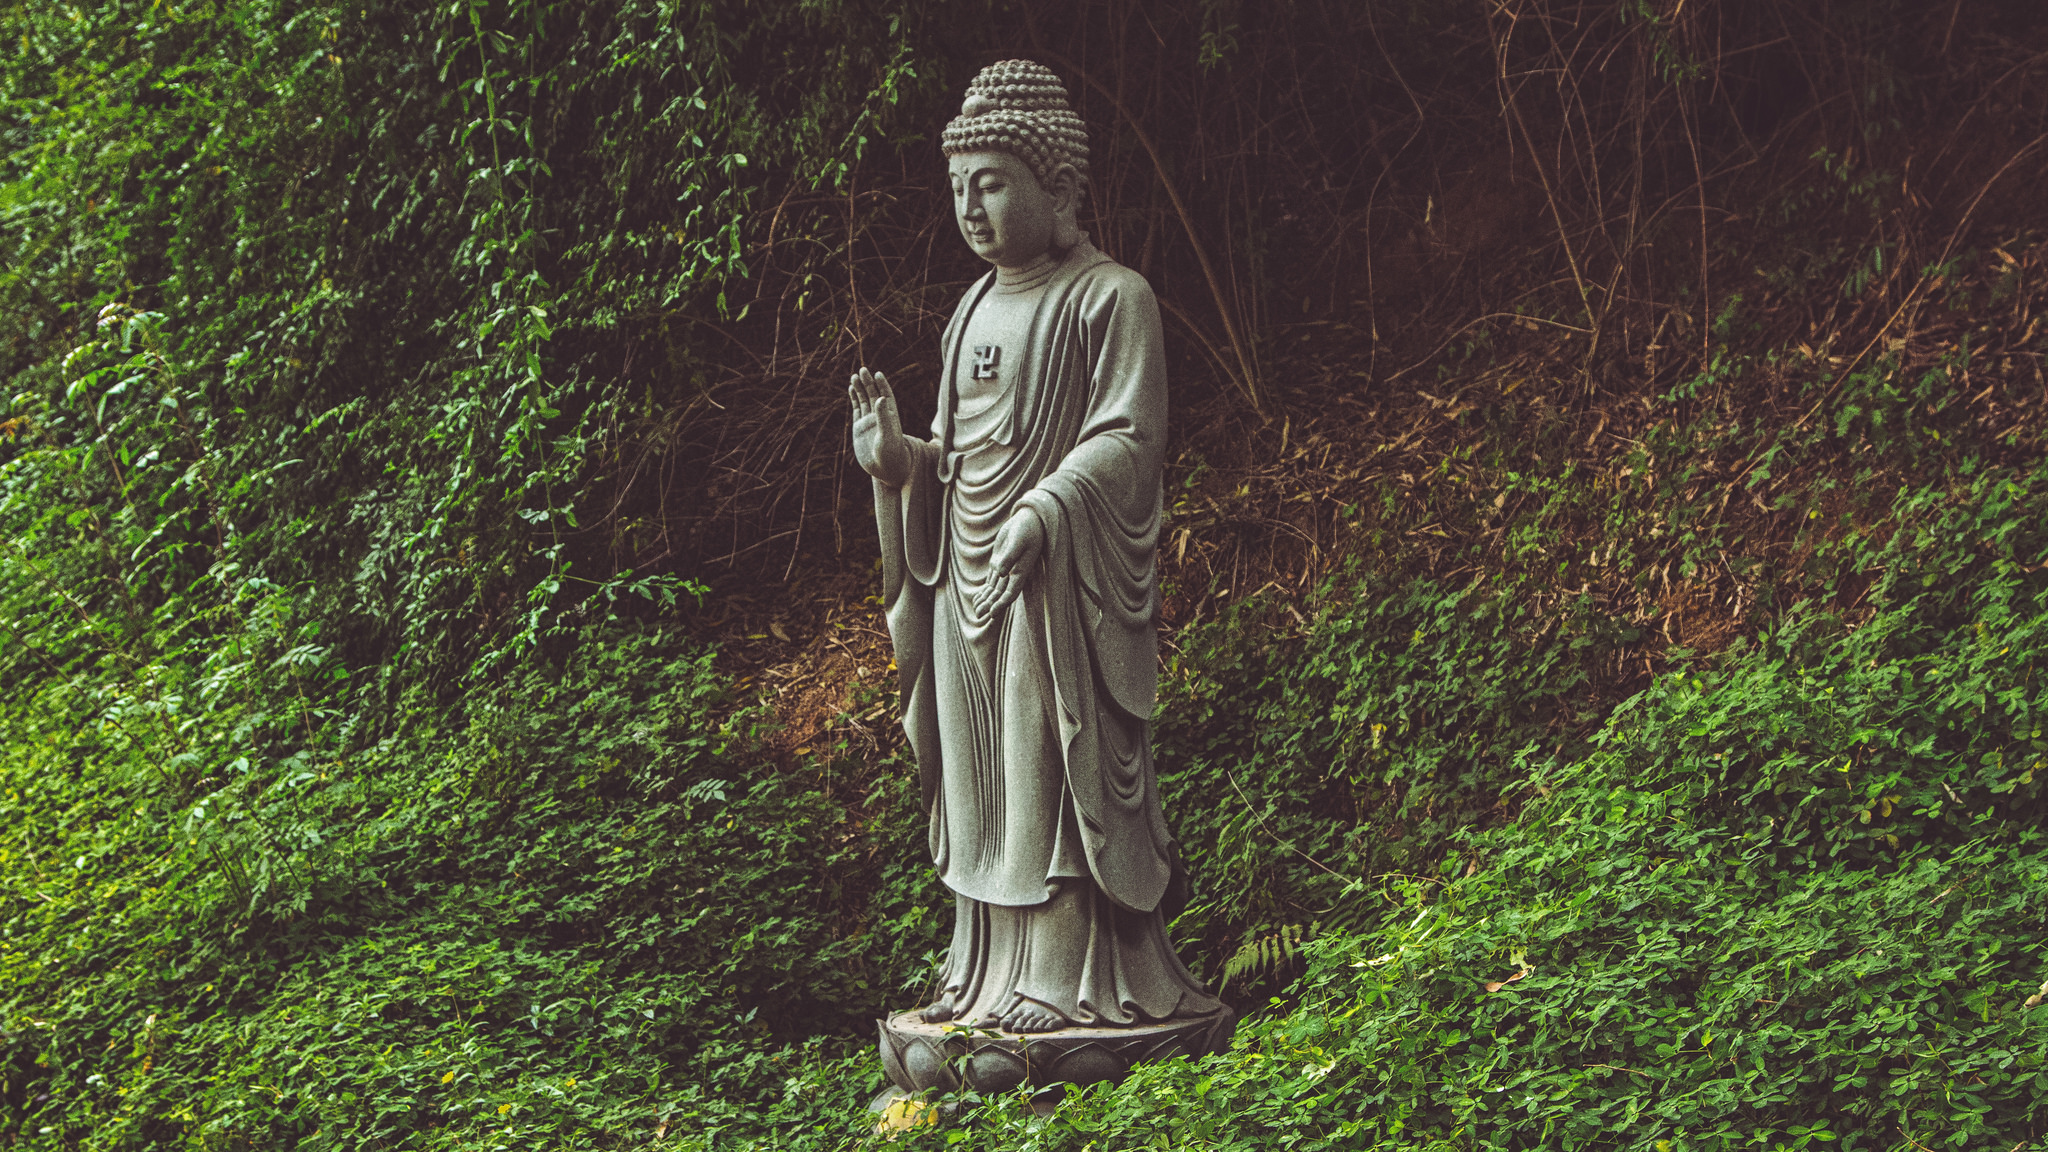 In dealing with uncertainty, scientists could learn something from Buddhism.   Pedro Travassos/Flickr  (CC BY 2.0)